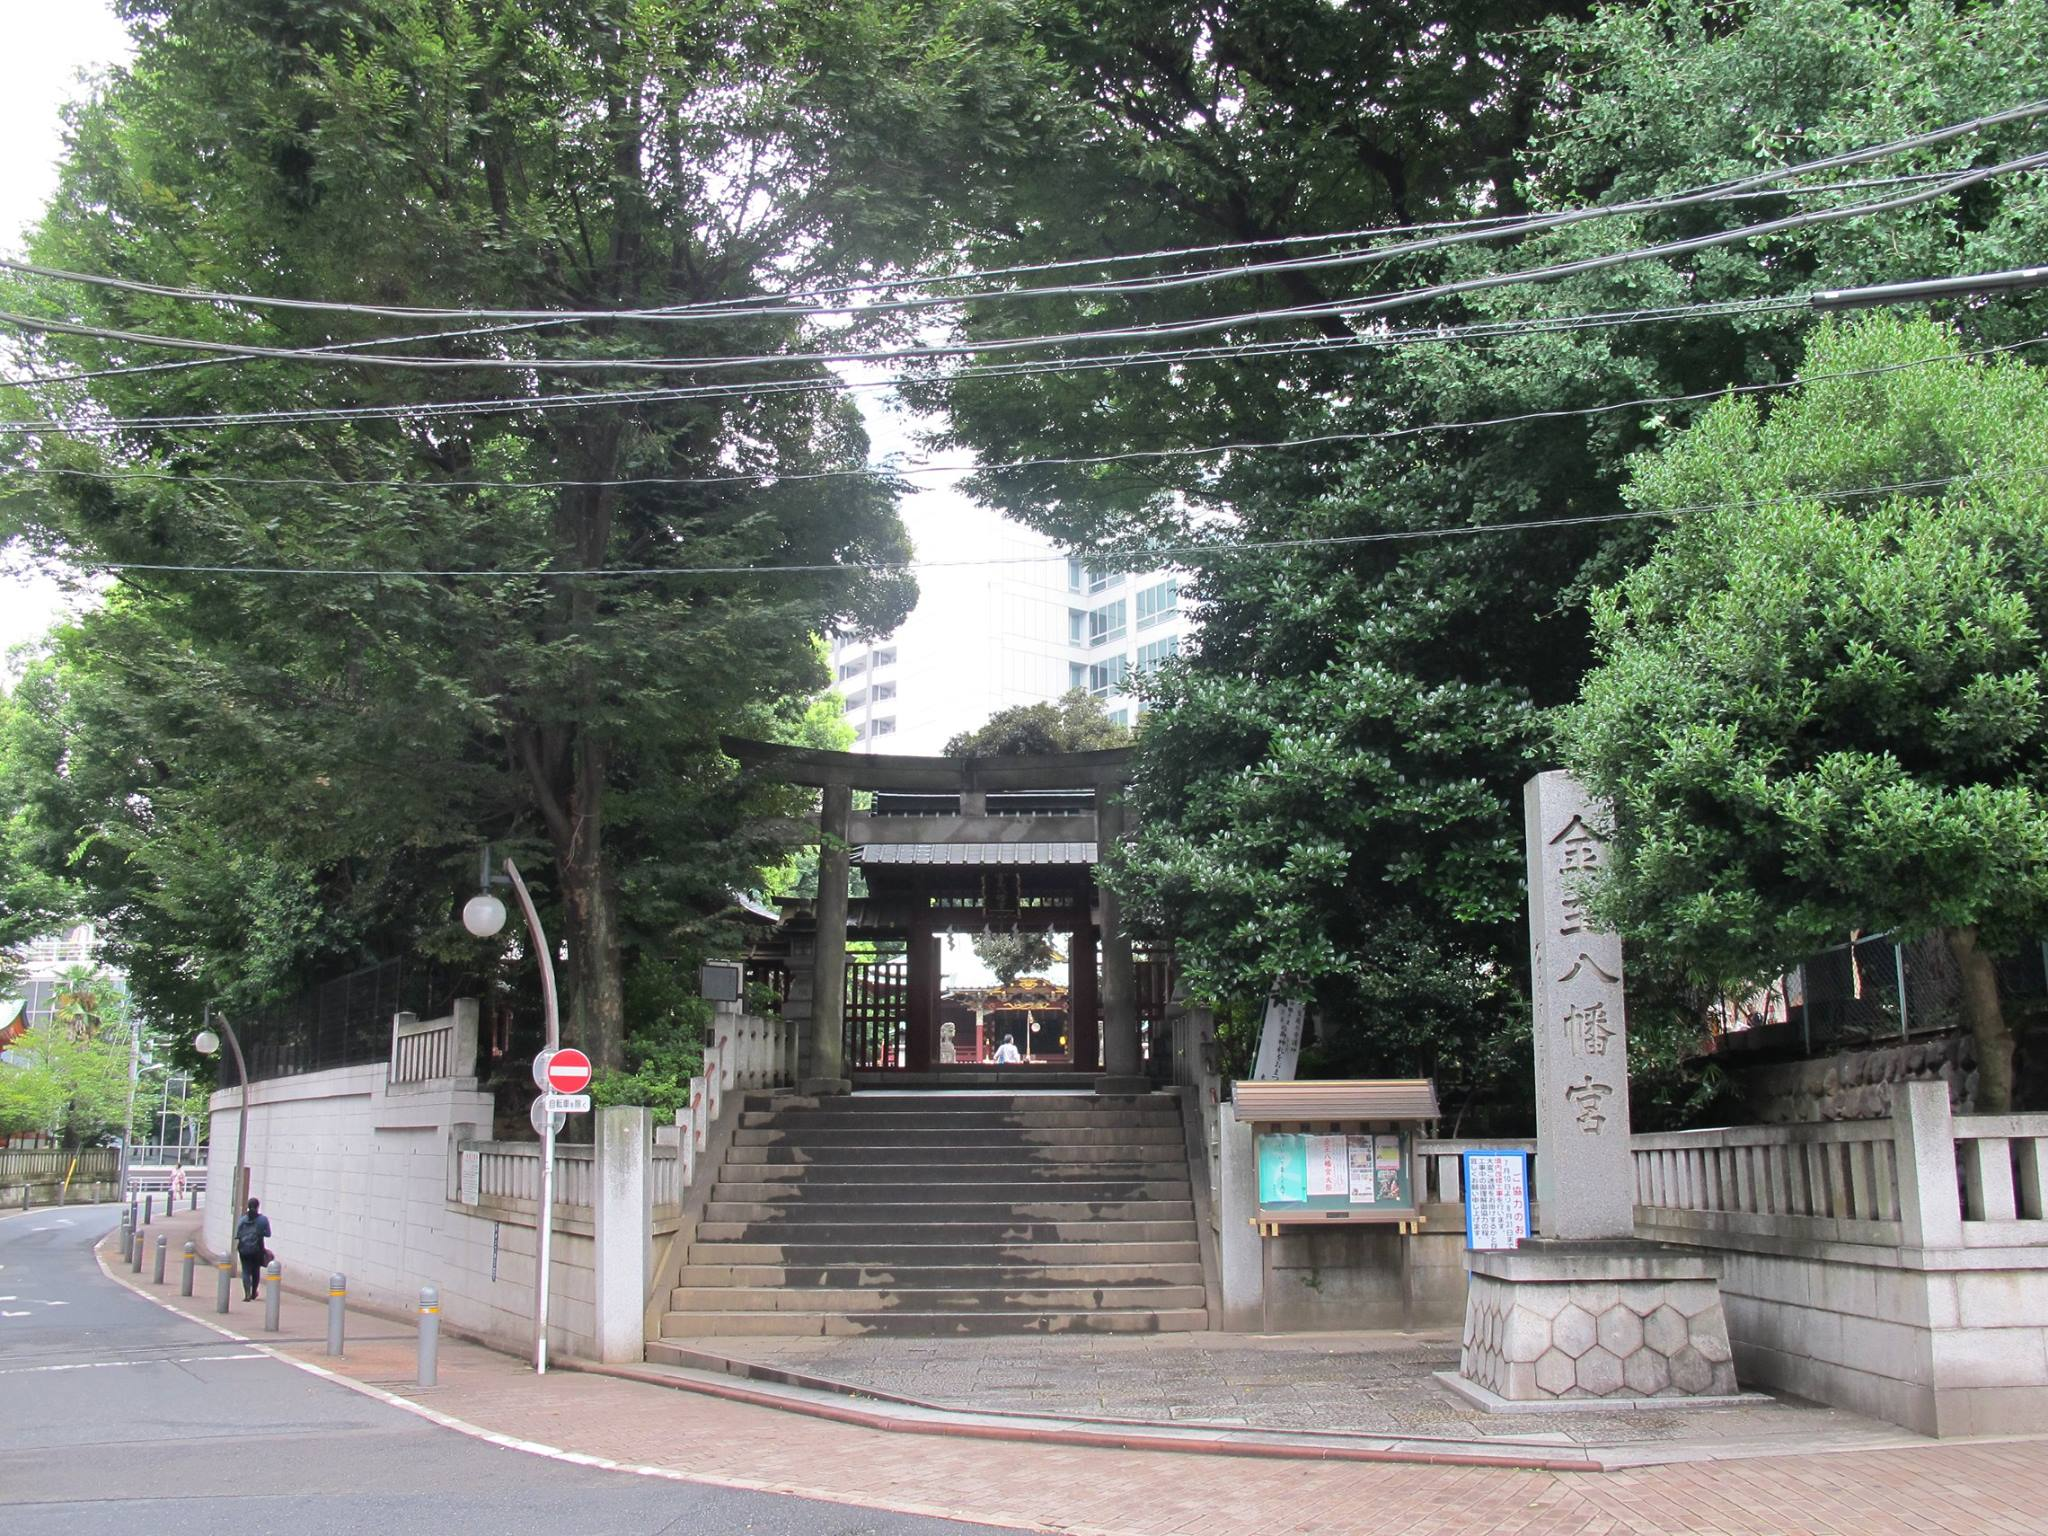 konno_shrine.jpg